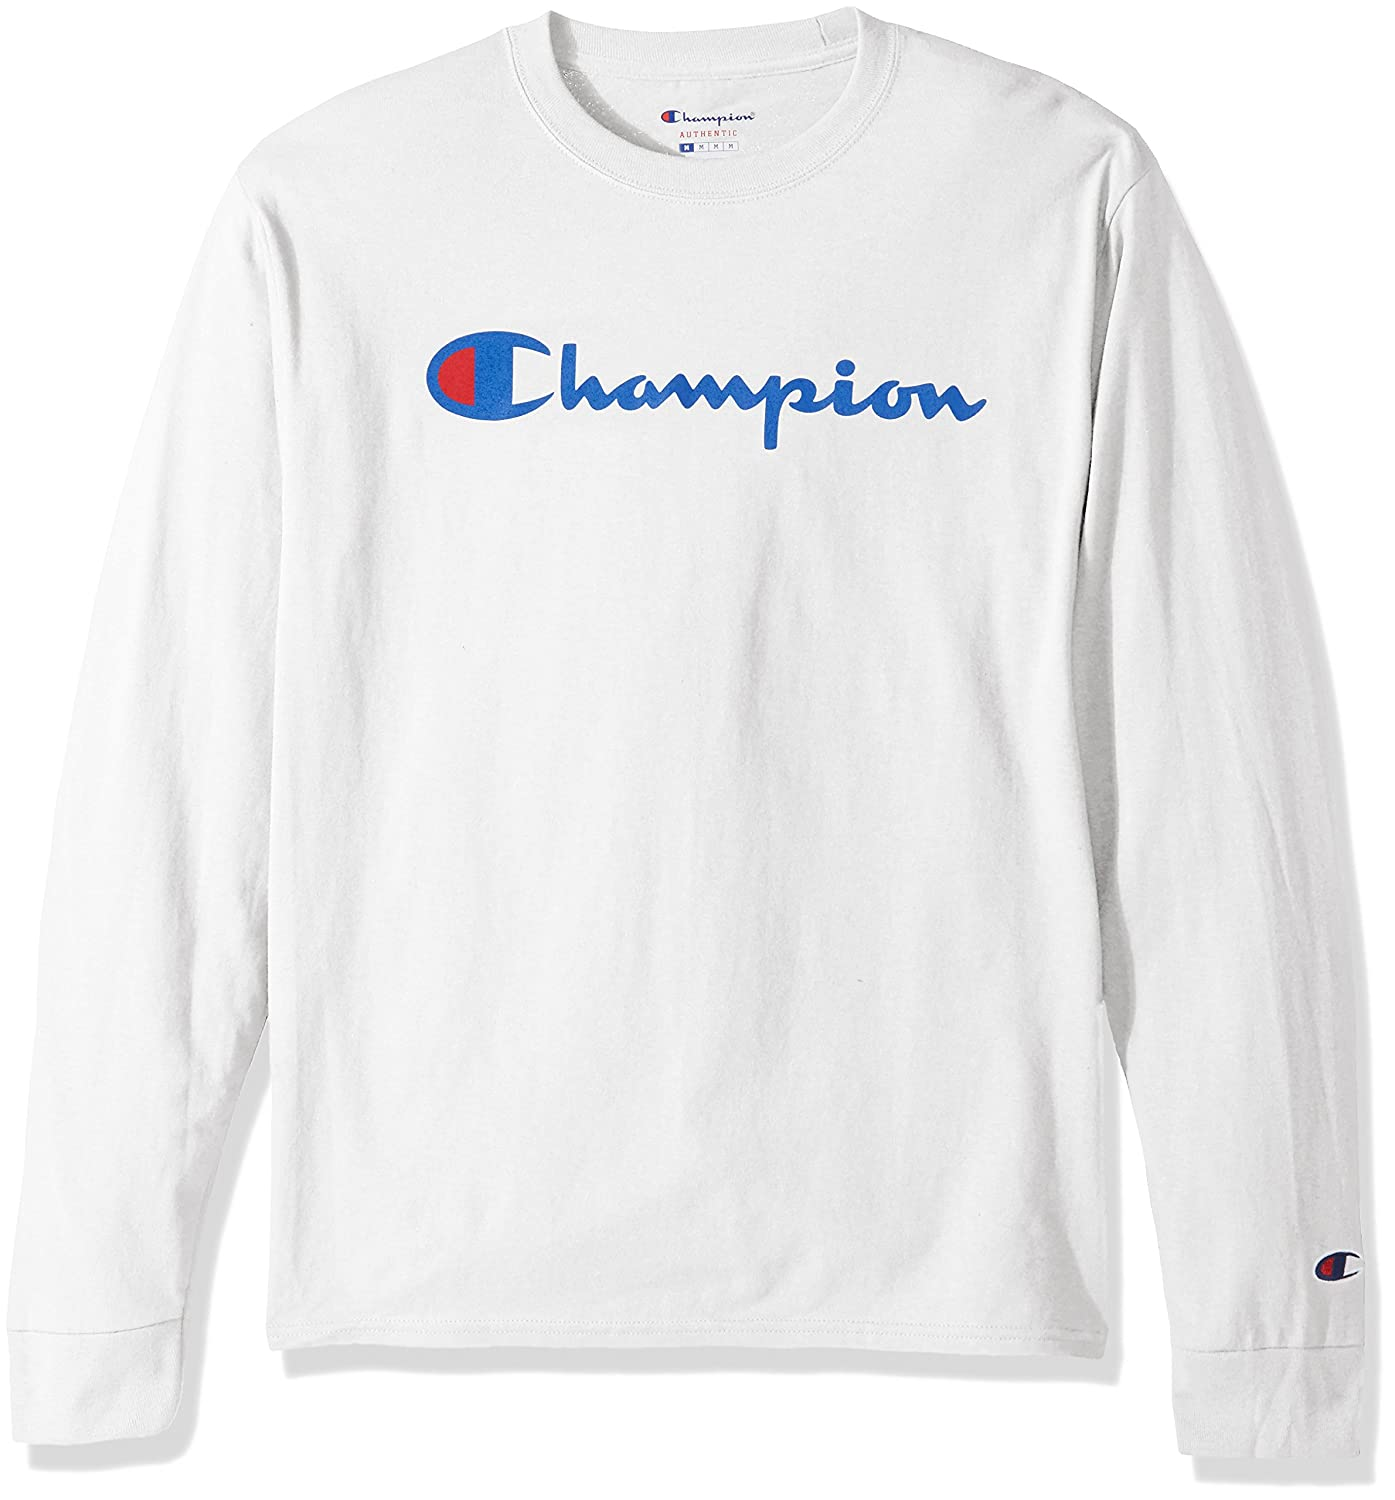 97e6f7ce Amazon.com: Champion LIFE Men's Cotton Long Sleeve Tee: Clothing